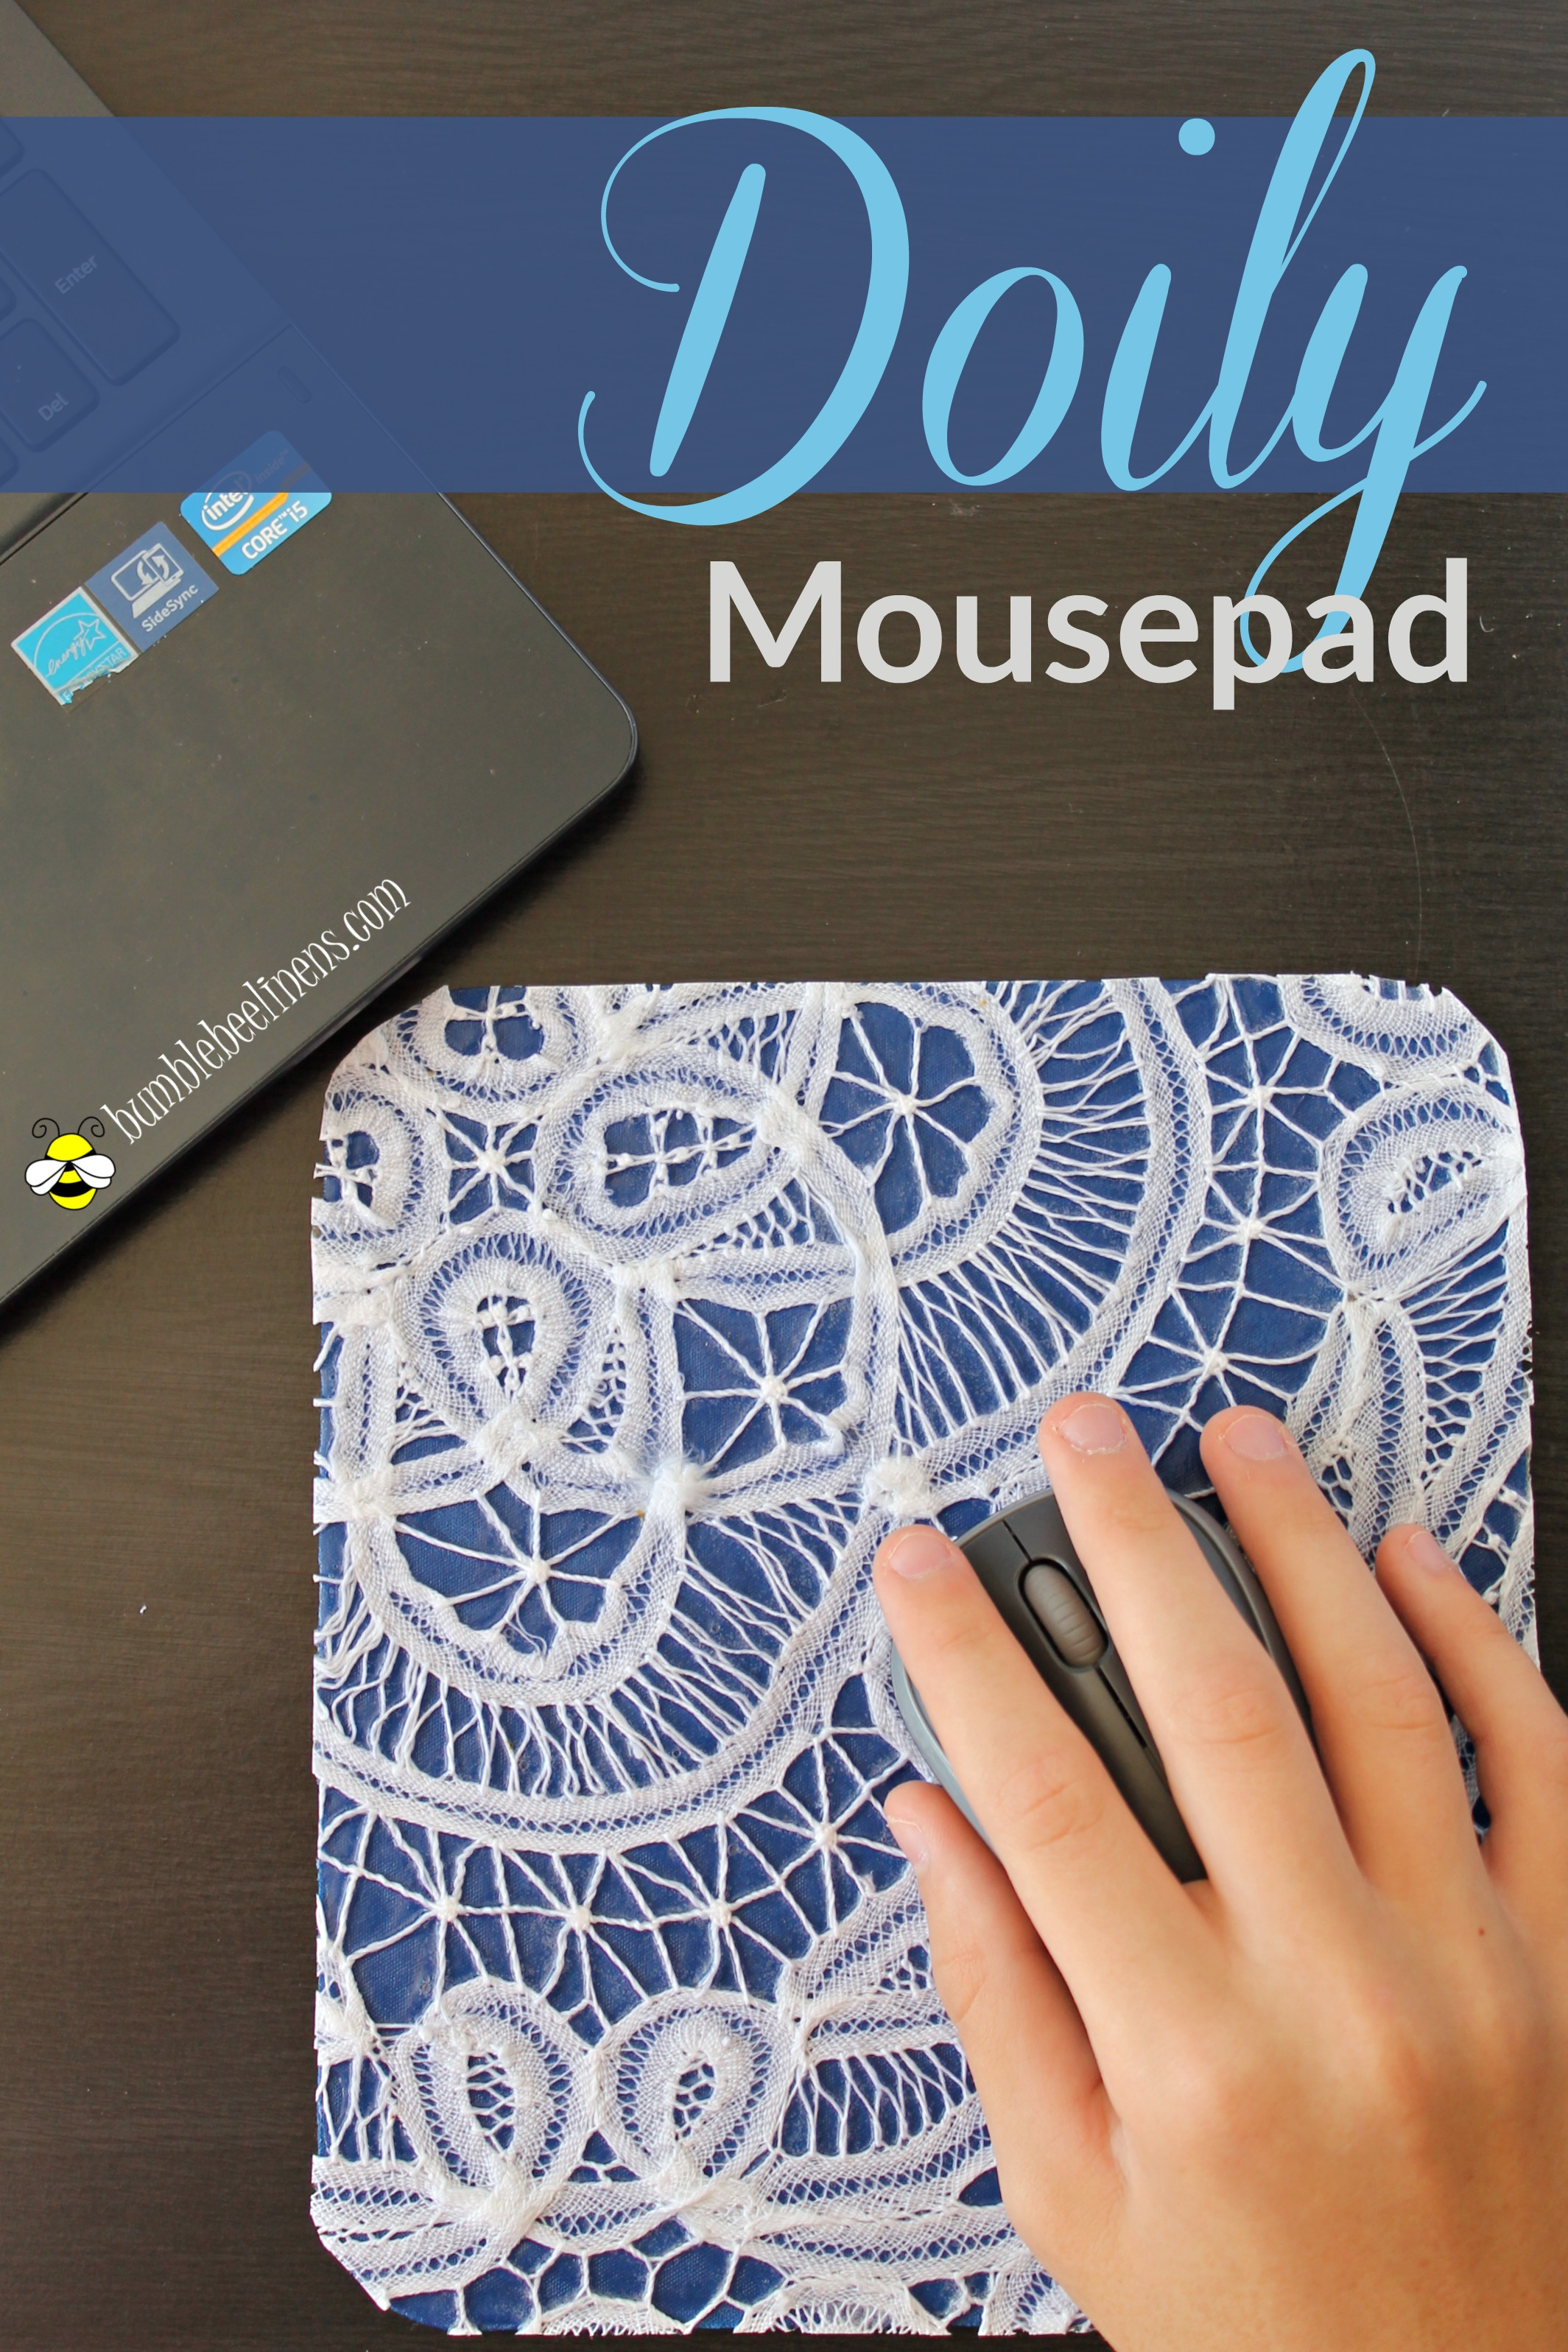 doily mousepad process Final with text